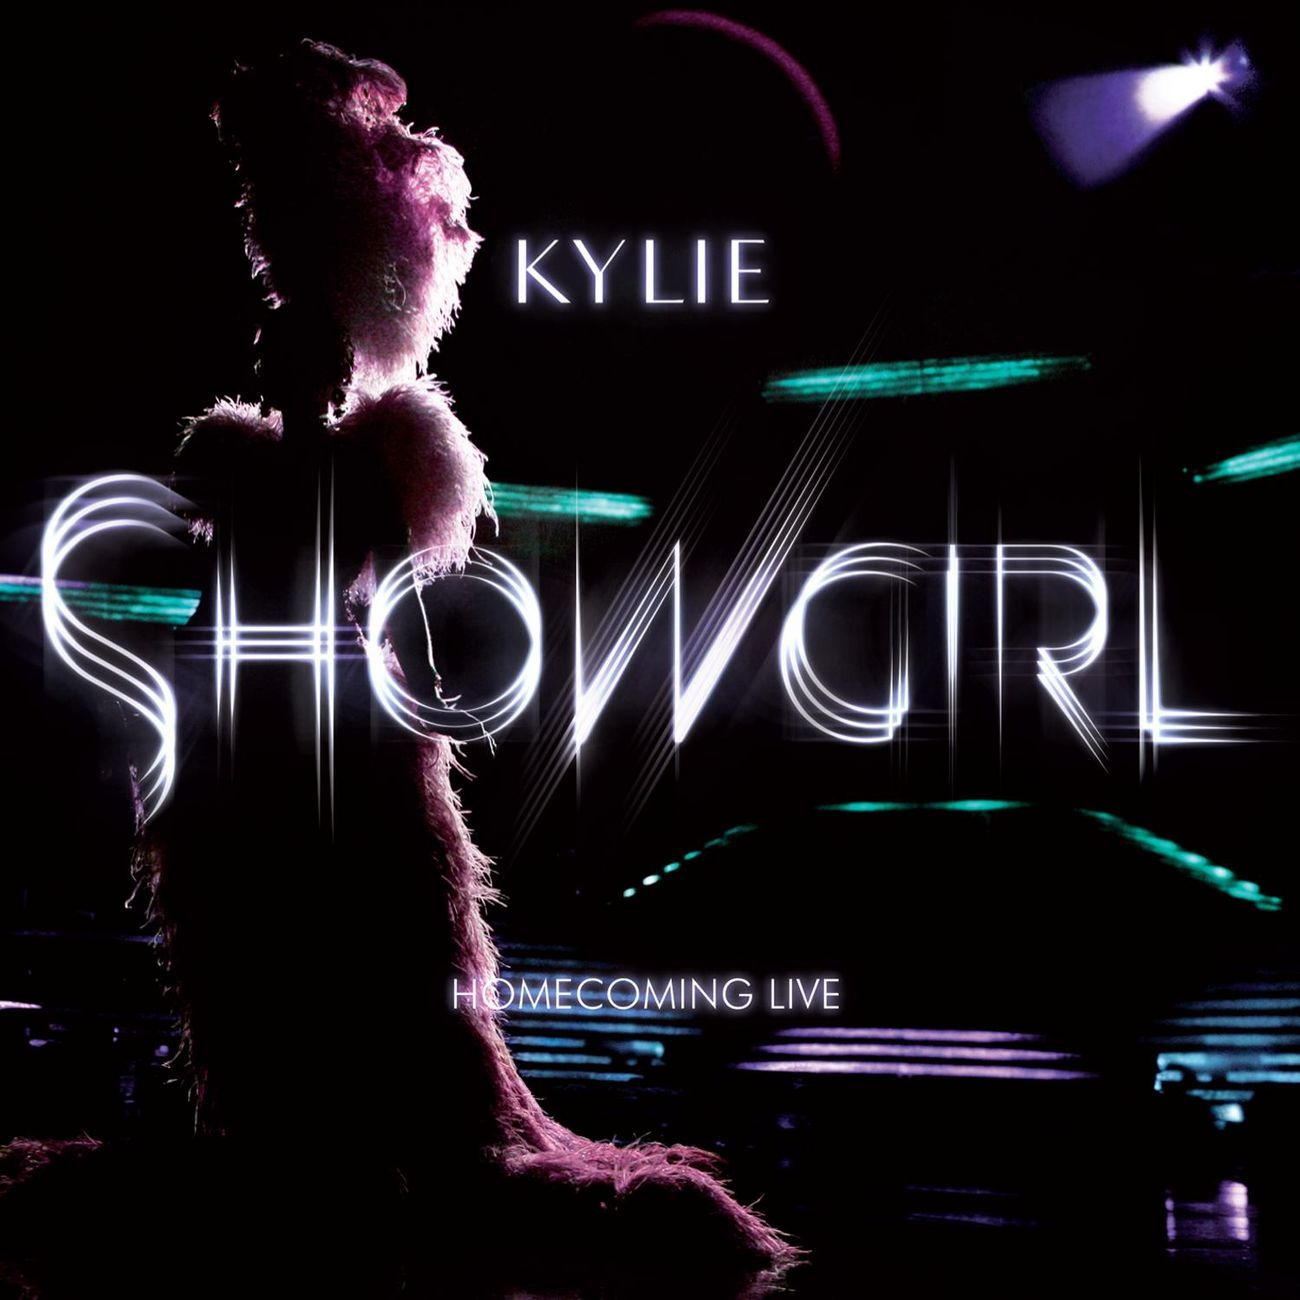 Kylie Minogue - Showgirl - Homecoming Live album cover